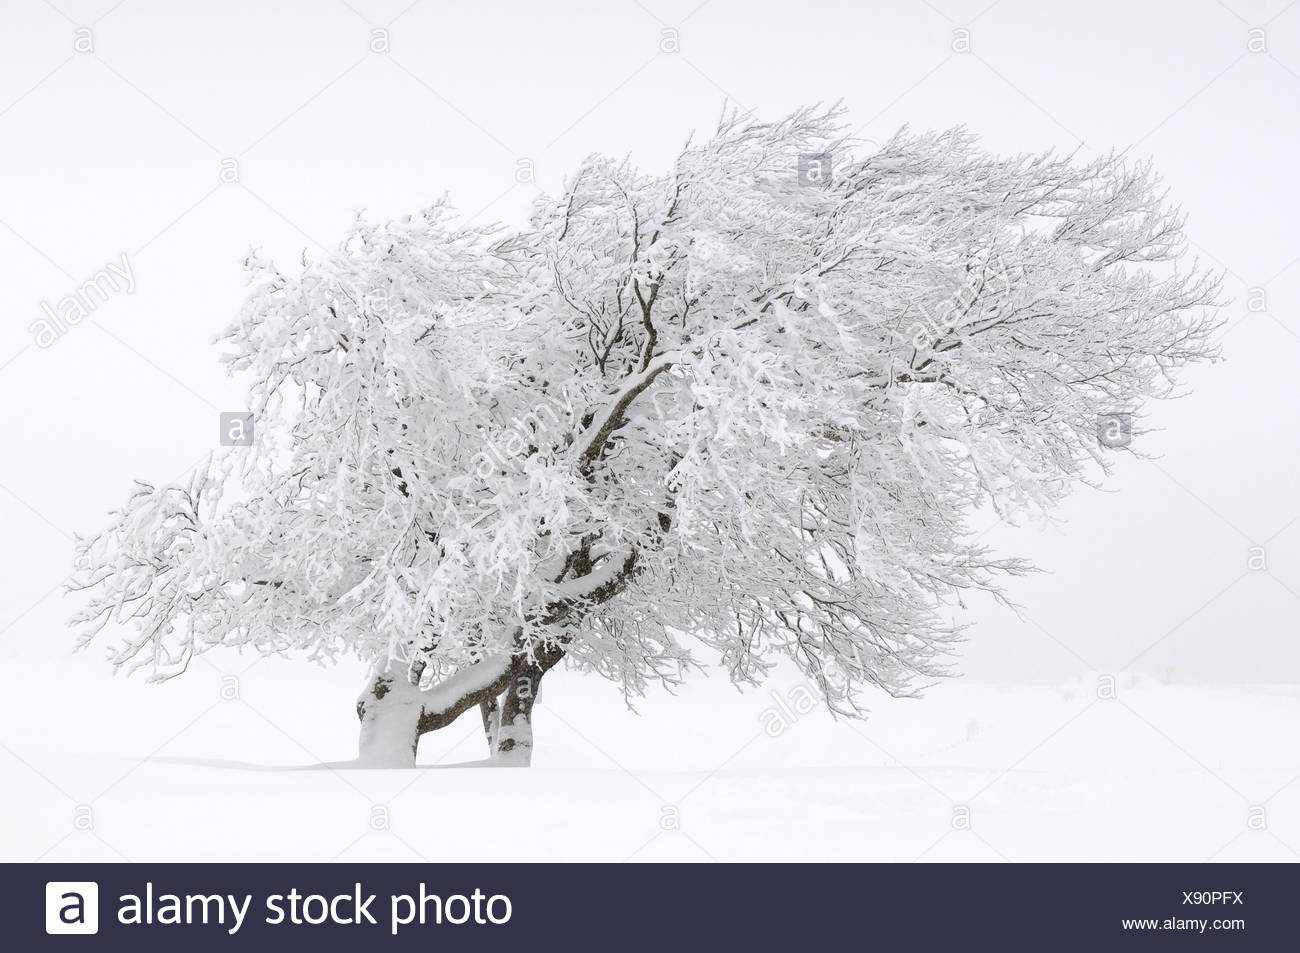 European Beech trees (Fagus sylvatica) deformed by the wind, Mt Schauinsland in the Black Forest, Baden-Wuerttemberg, Germany,  - Stock Image